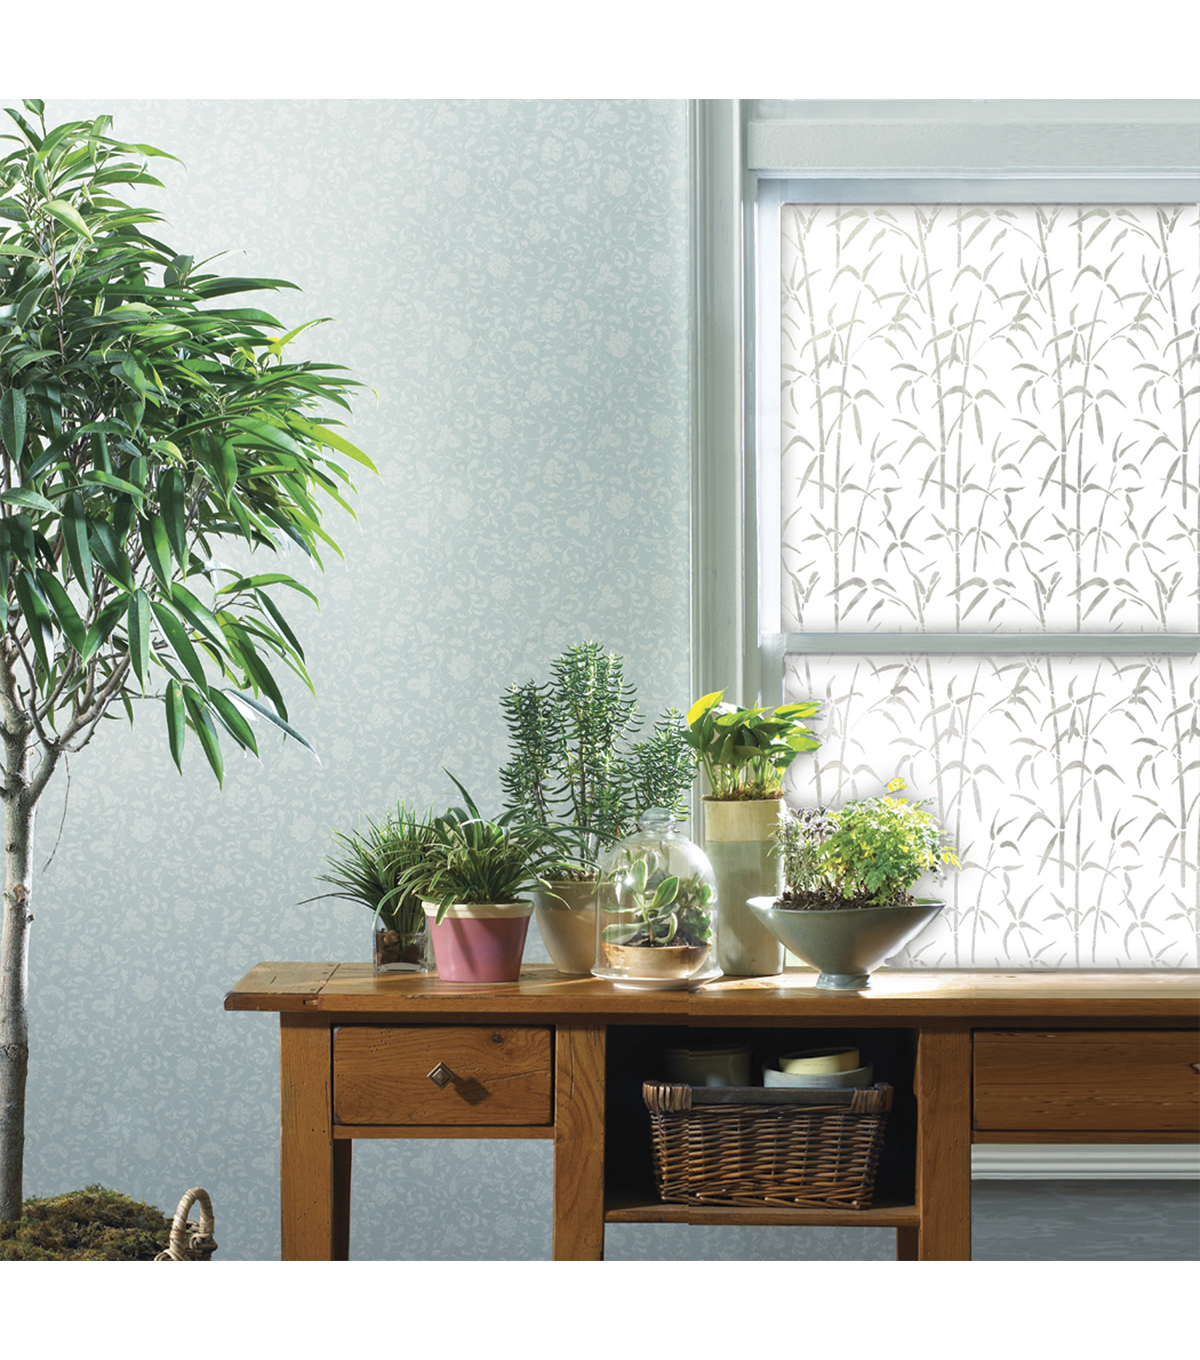 Privacy Film-Bamboo Window